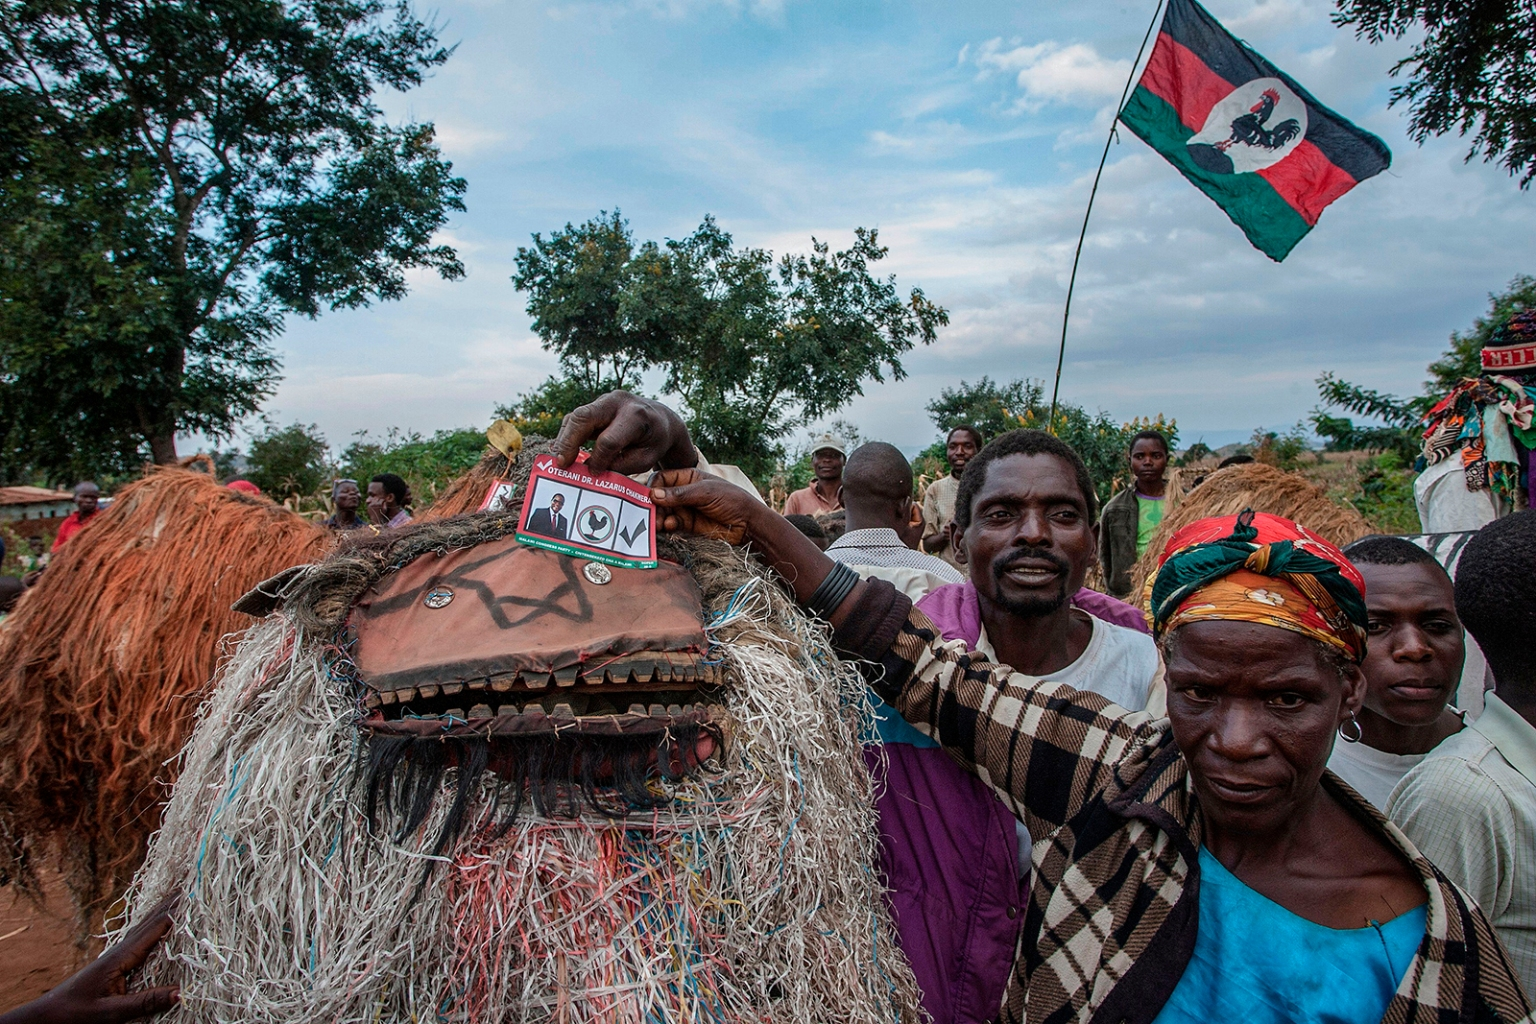 A female village chief and incharge of the Gulewamkulu dance holds a dummy ballot paper urging people to vote for Lazarus Chakwera, leader of the Malawi Congress Party, the main Malawi opposition party, during a campaign rally in Lilongwe on May 12, ahead of Malawi's general election. AMOS GUMULIRA/AFP/Getty Images